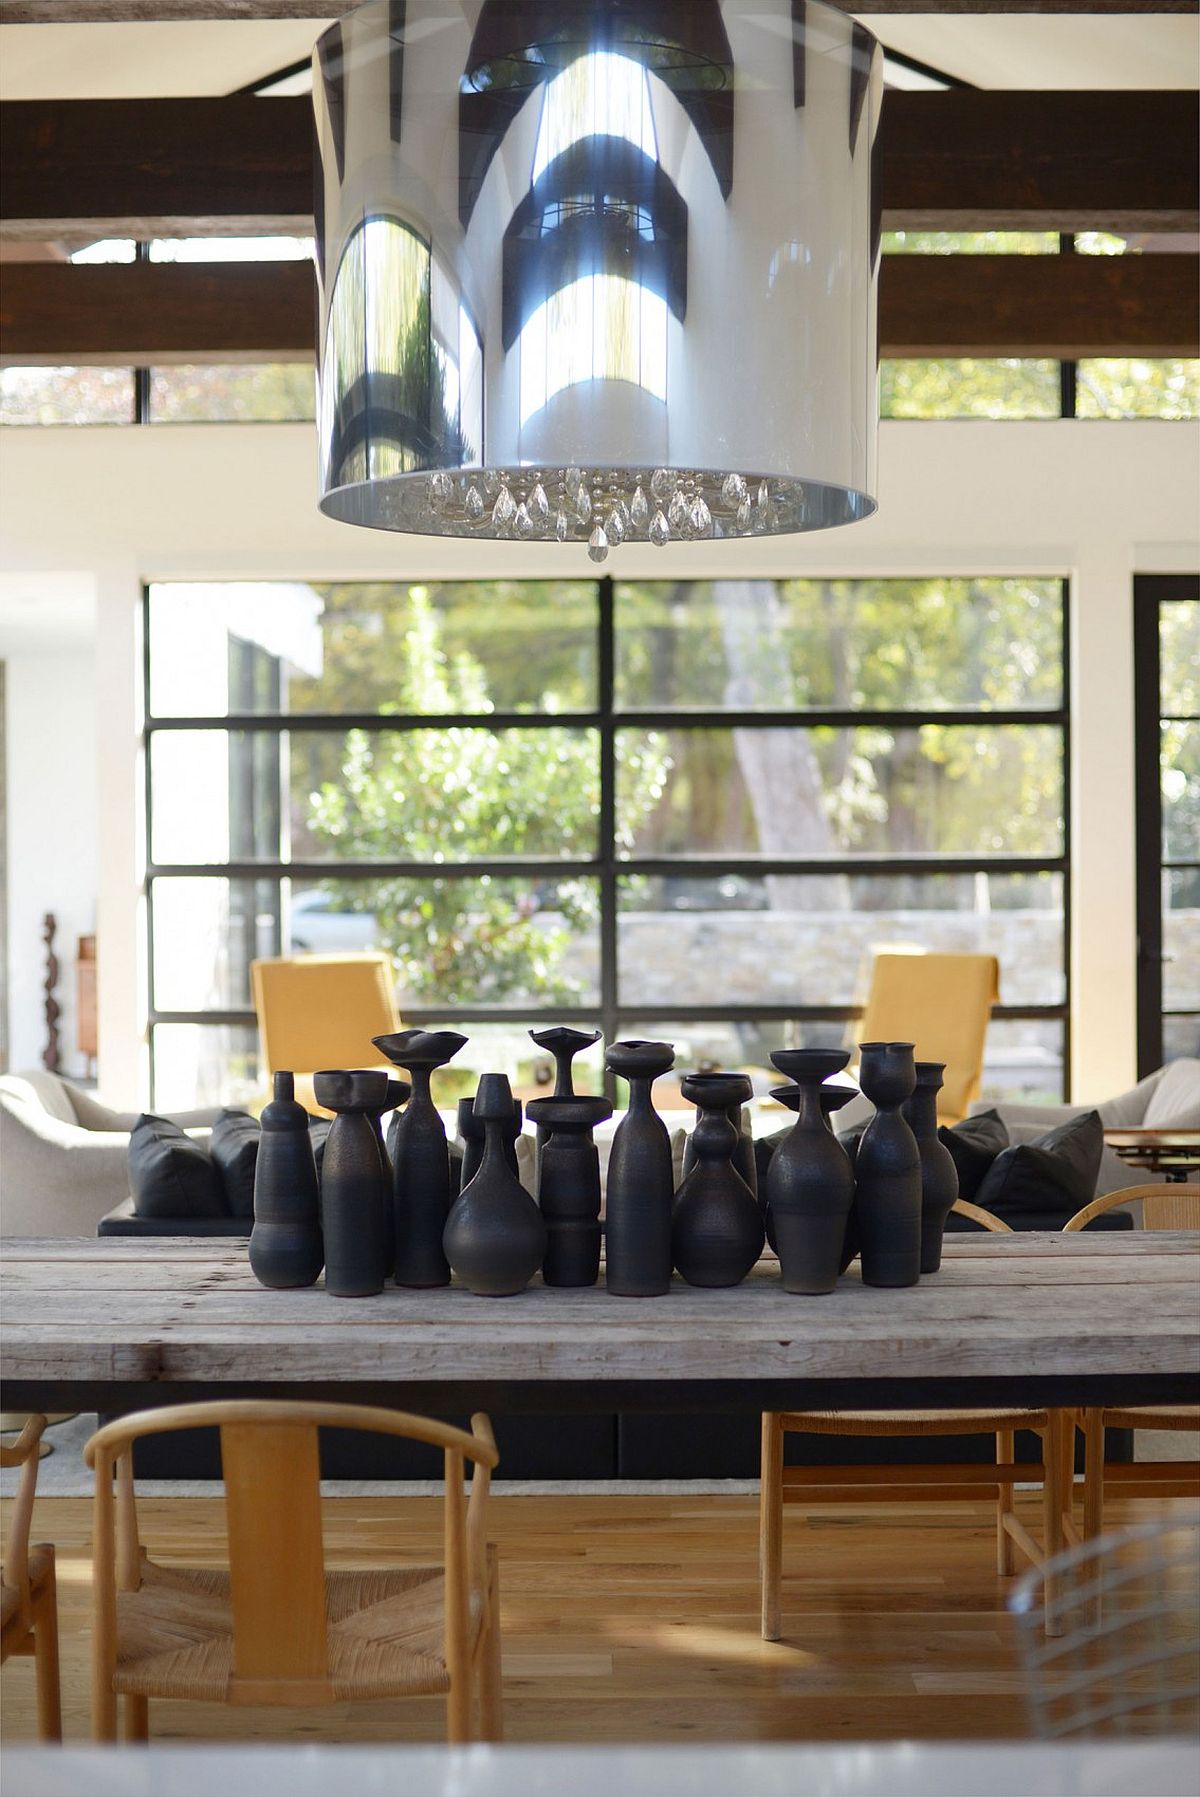 Interesting collection of accessories inside the modern Texas home